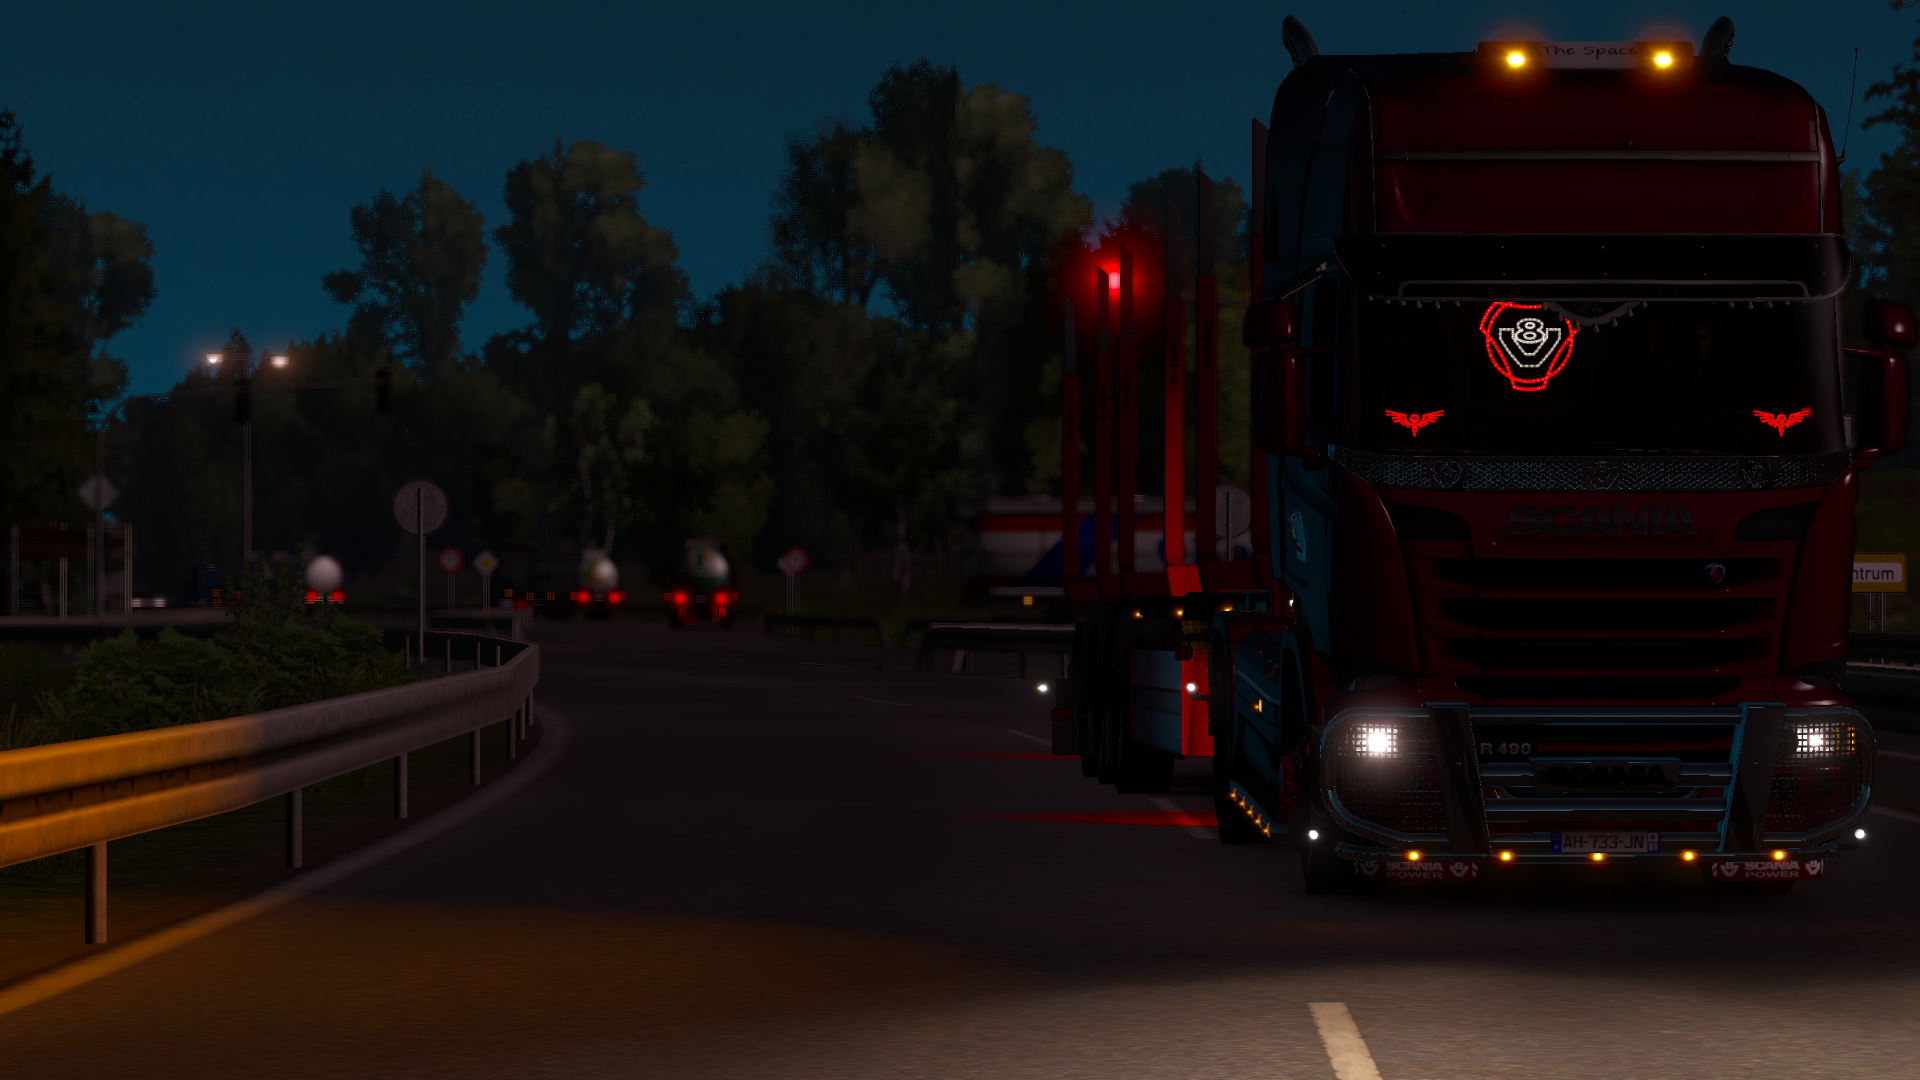 ets2_20190624_195522_00.png